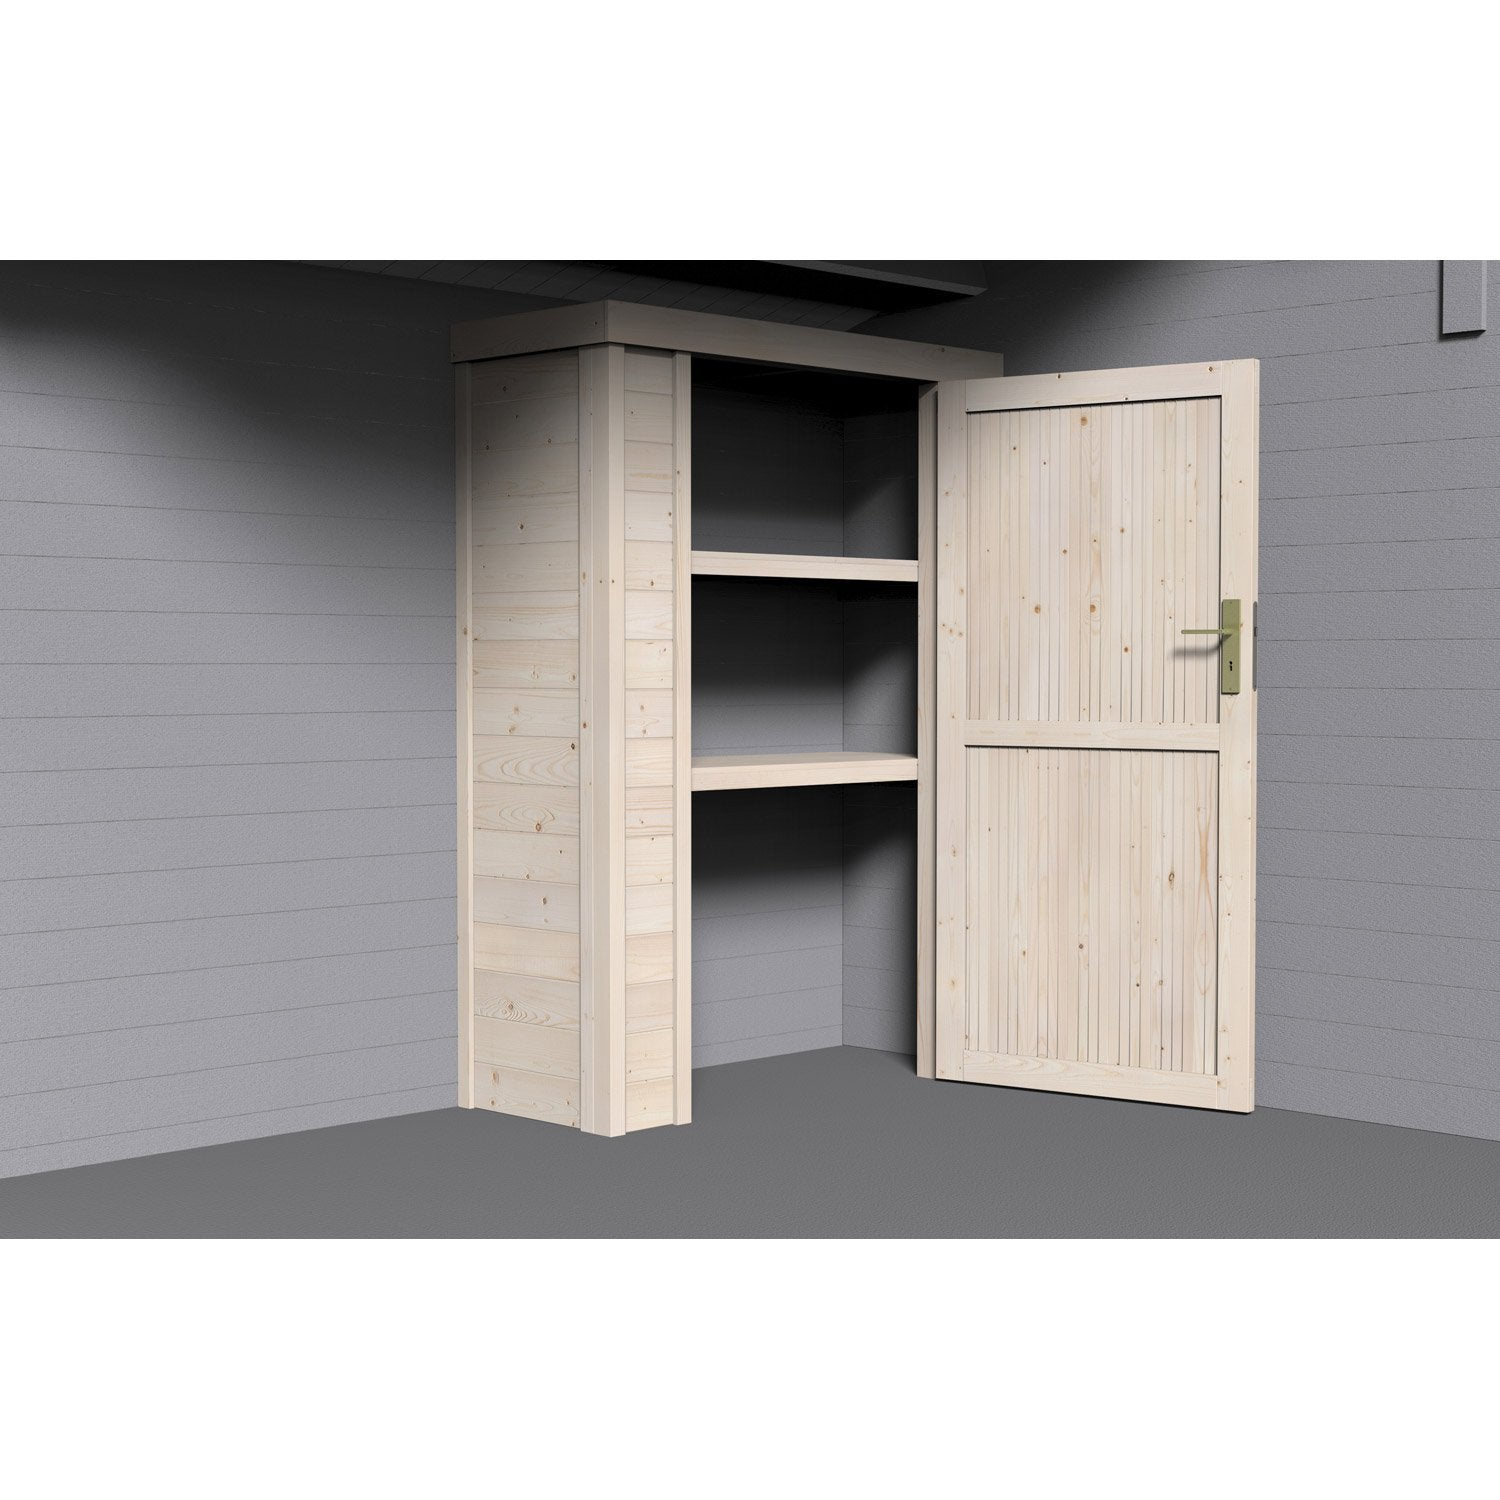 armoire en bois x x cm leroy merlin. Black Bedroom Furniture Sets. Home Design Ideas